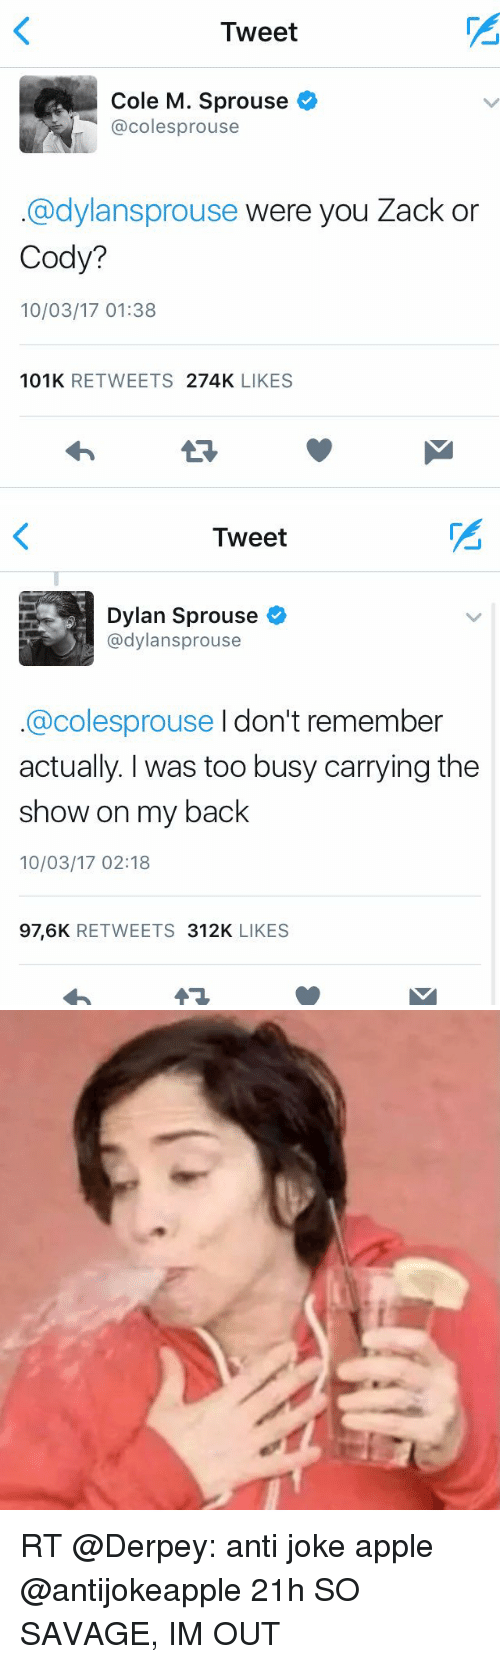 anti jokes: Tweet  Cole M. Sprouse  @cole sprouse  @dylansprouse were you Zack or  Cody?  10/03/17 01:38  101K  RETWEETS  274K  LIKES   Tweet  Dylan Sprouse  @dylansprouse  @colesprouse I don't remember  actually. was too busy carrying the  show on my back  10/03/17 02:18  97,6K  RETWEETS  312K  LIKES RT @Derpey: anti joke apple @antijokeapple 21h SO SAVAGE, IM OUT